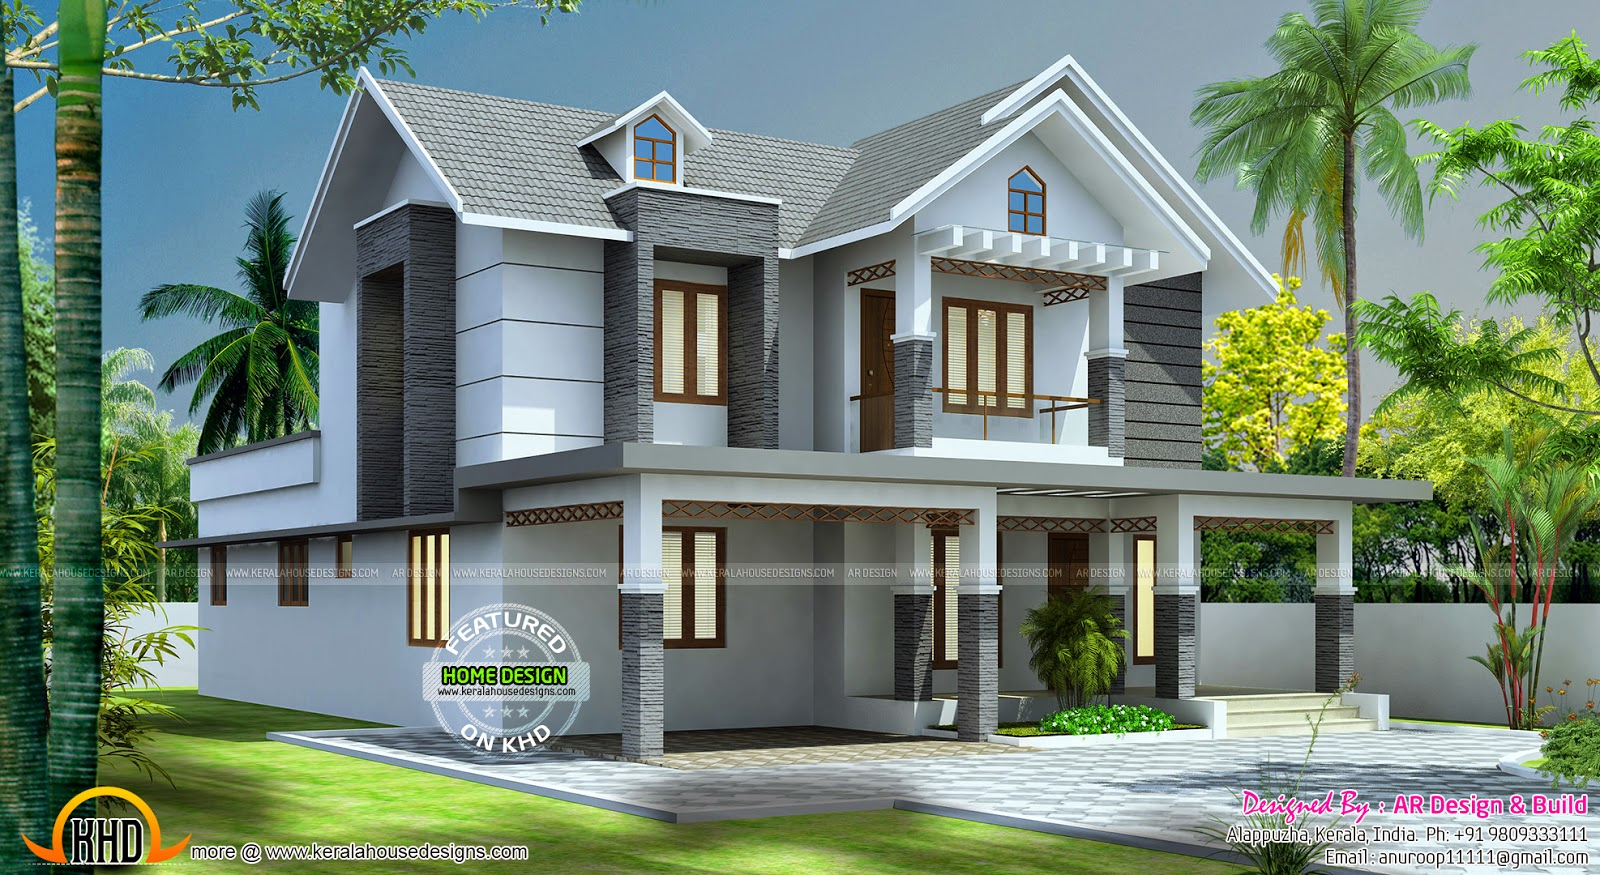 Beautiful 2545 sq ft home design kerala home design and Beautiful home designs inside